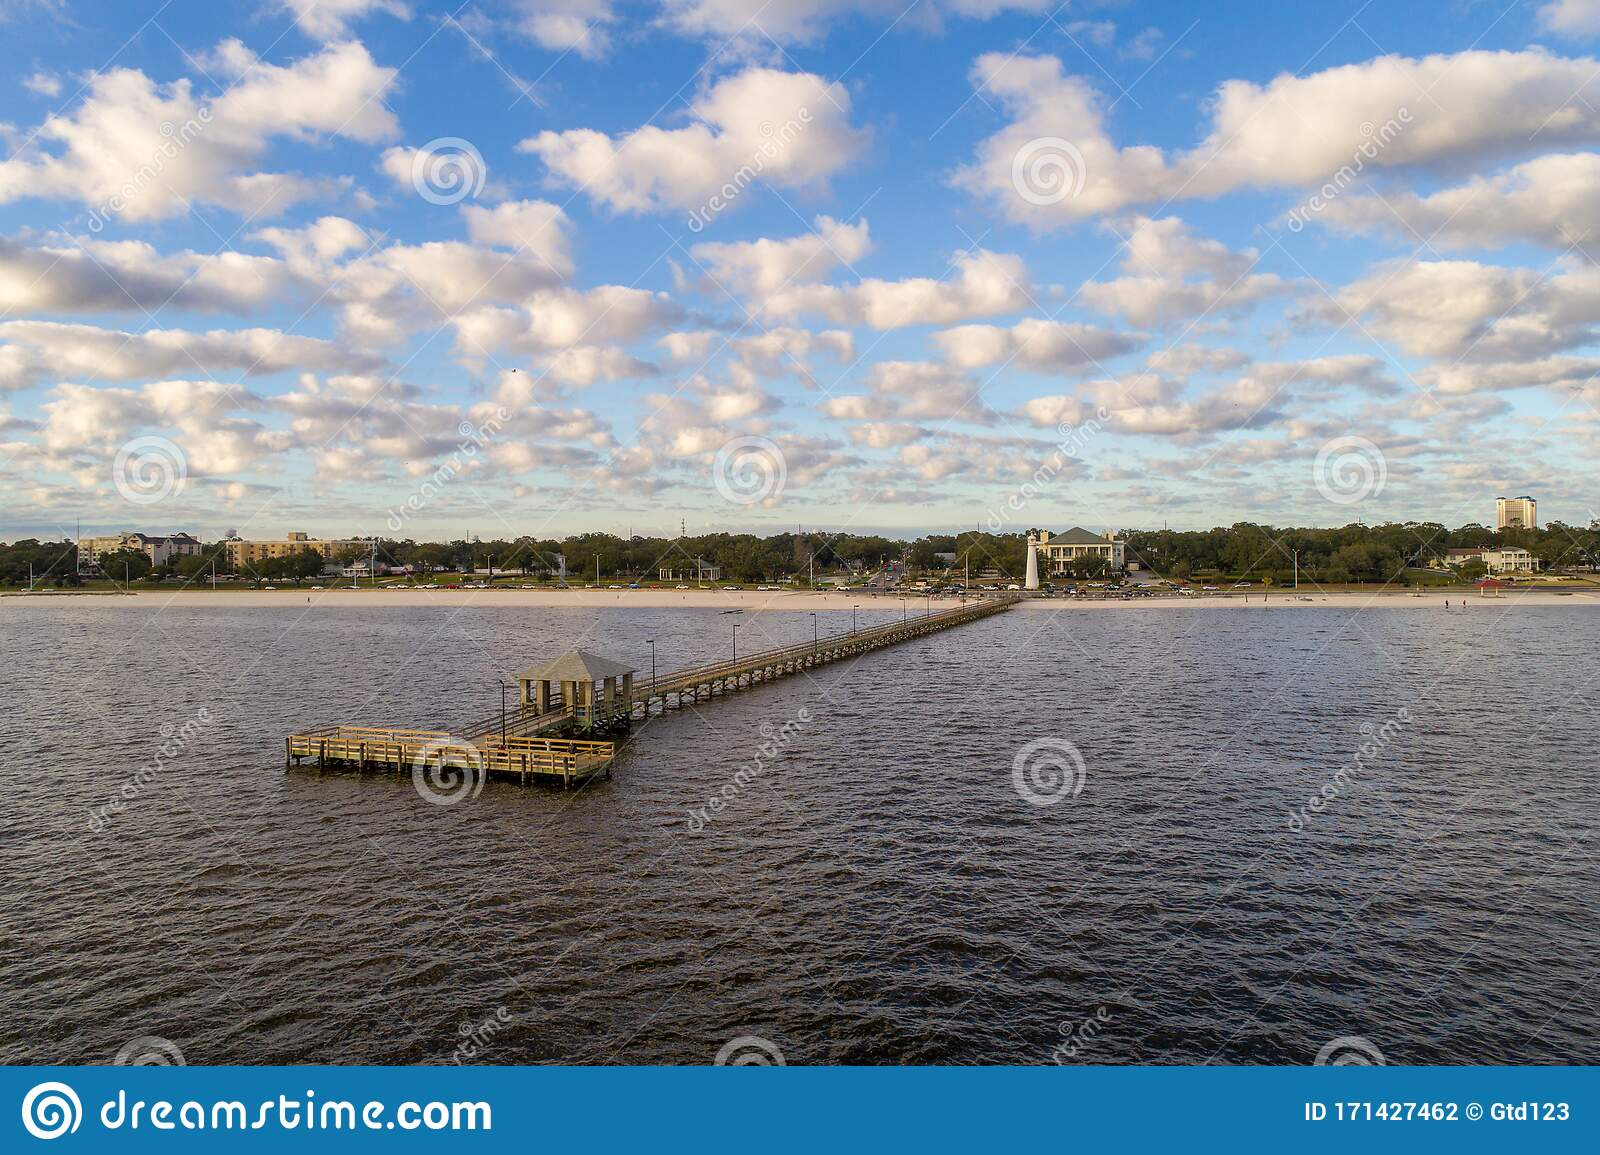 Biloxi Mississippi Beach Stock Photo Image Of America 171427462